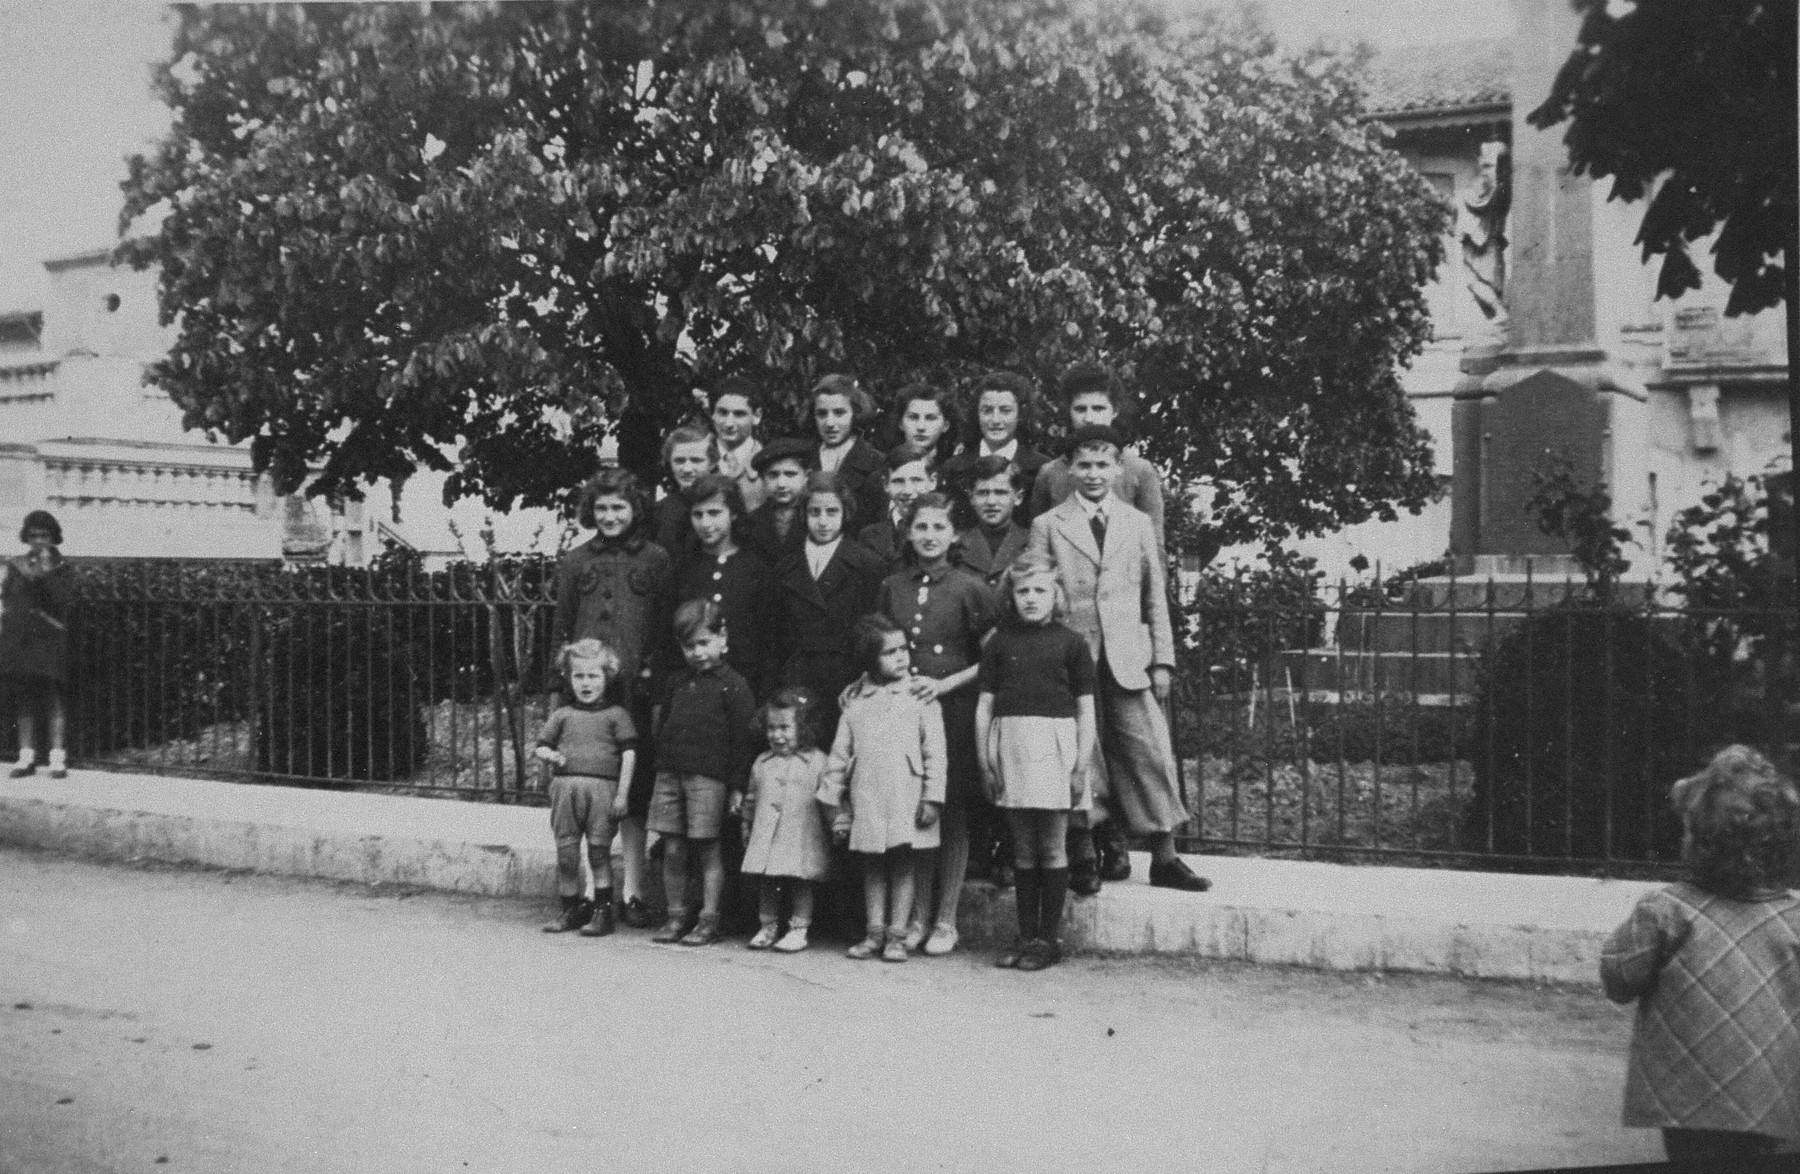 Group portrait of Jewish refugee children sheltered at the OSE children's home of Montagnac.    Second row, left to right: Peshu Weiss, Sarah Diamant, Edith Feldman, Ernestine Spirn; Third row: Edith Schiff, Israel Diamant, Menachem Horowitz, Jacques Schiff, Jerome Hirsch; Last row: Alfred Feldman, Rahel Feldman, Taube Spirn, Jenny Feldman, Rachel Diamant.